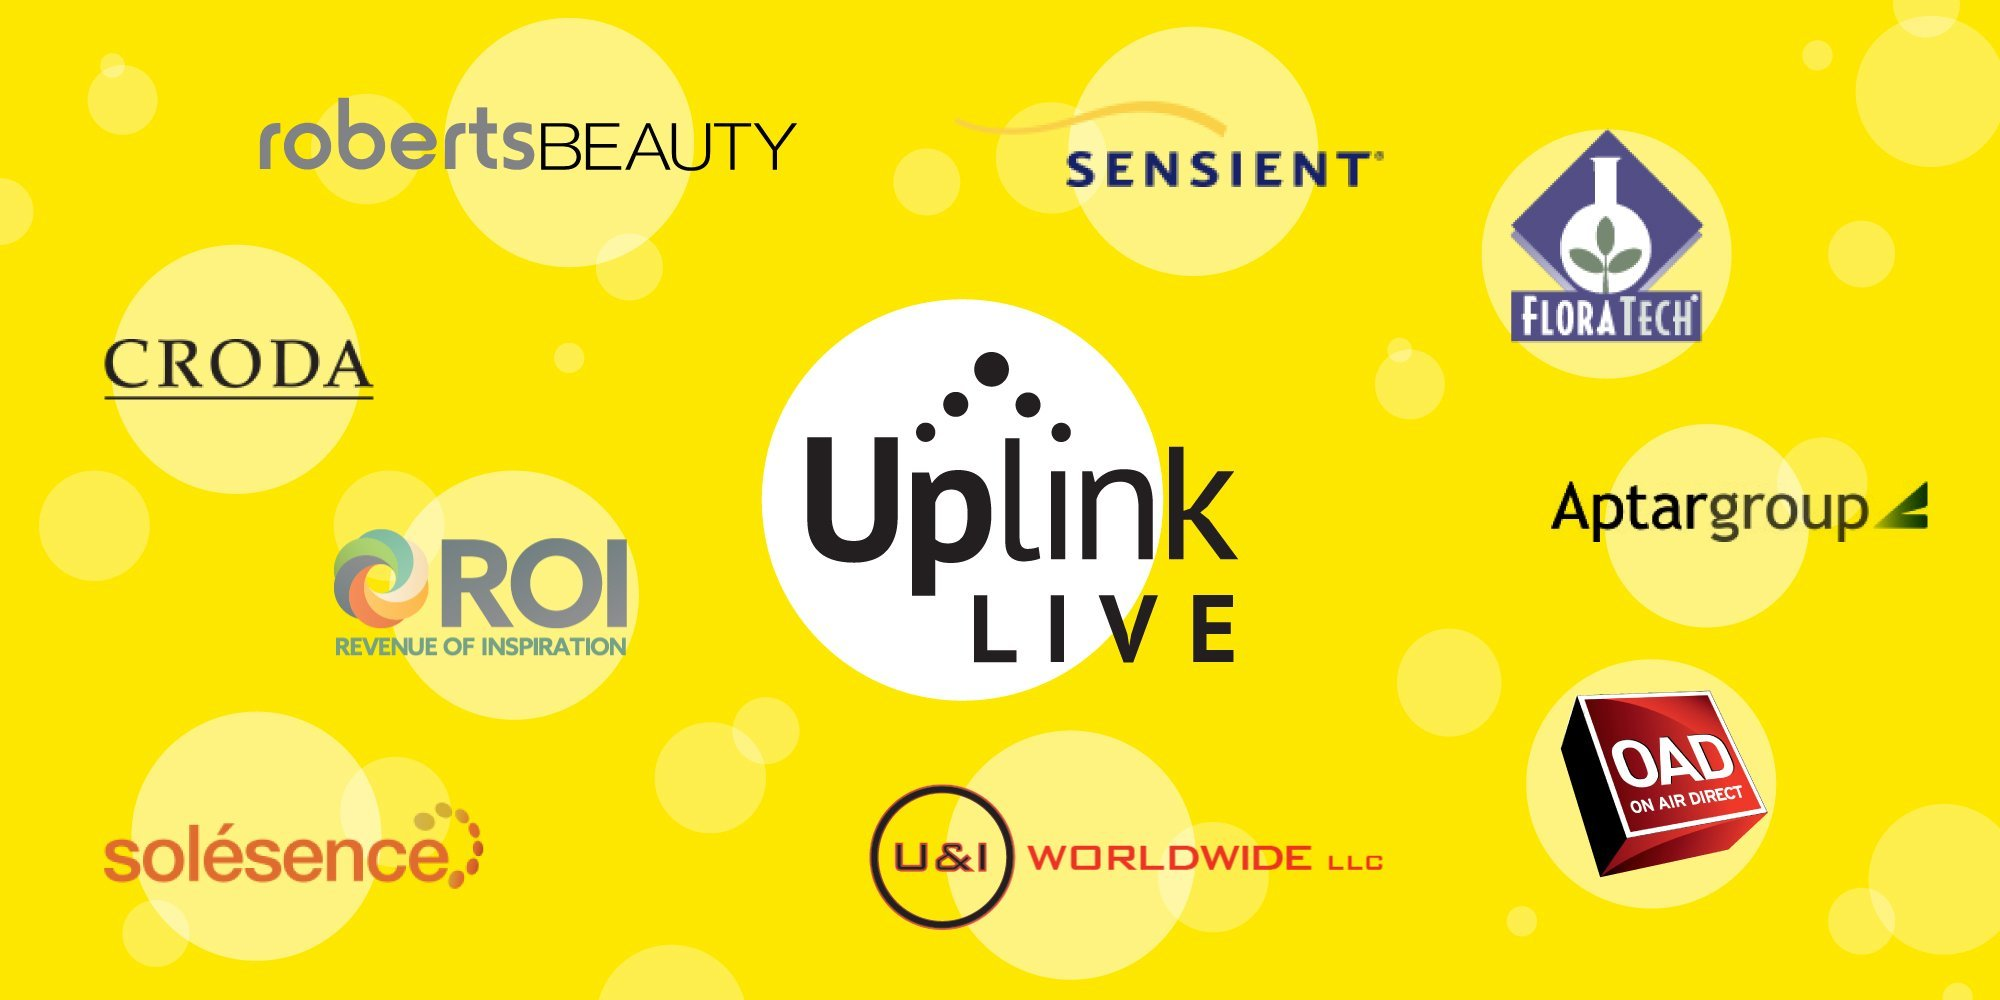 Uplink Live Builds Source For Growth With Launch Partners And Referral Program